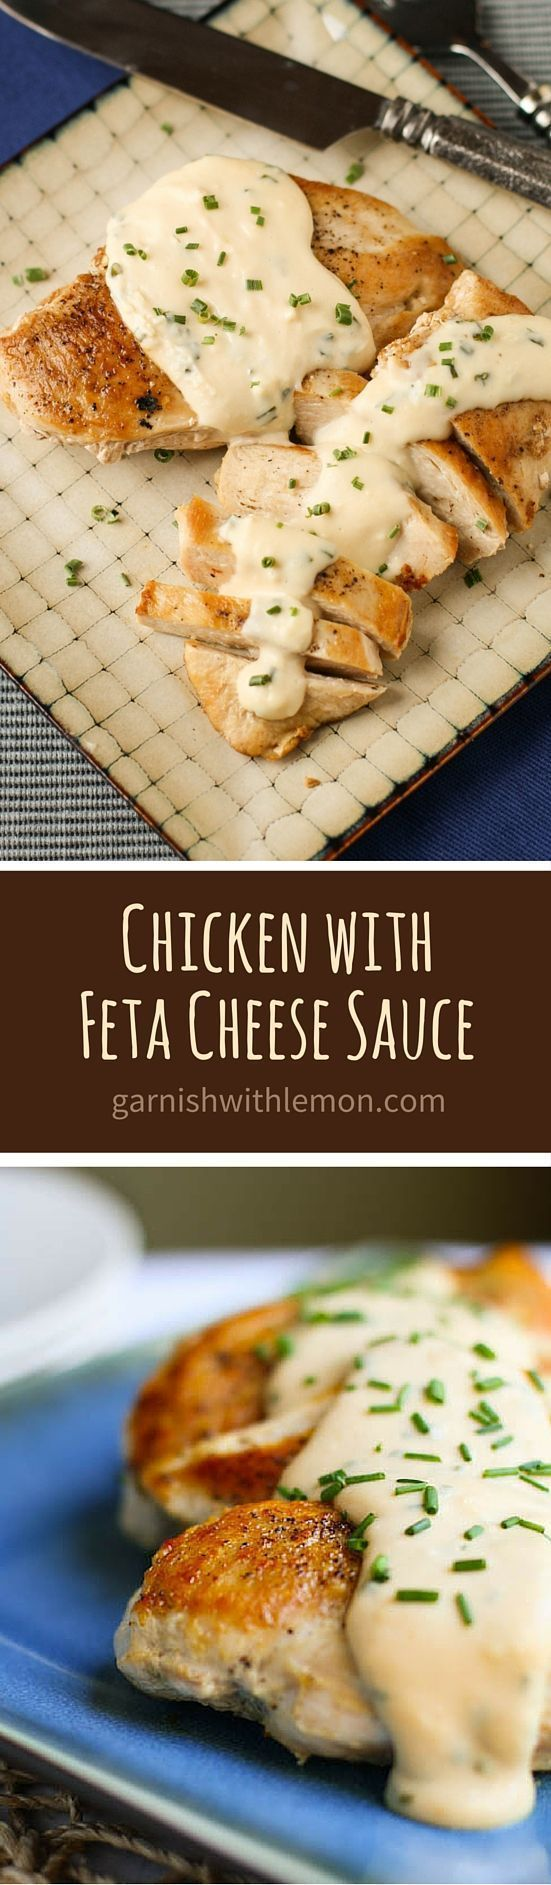 Don T Miss Our Family S Favorite Easy Dinner Recipe Chicken With Feta Cheese Sauce